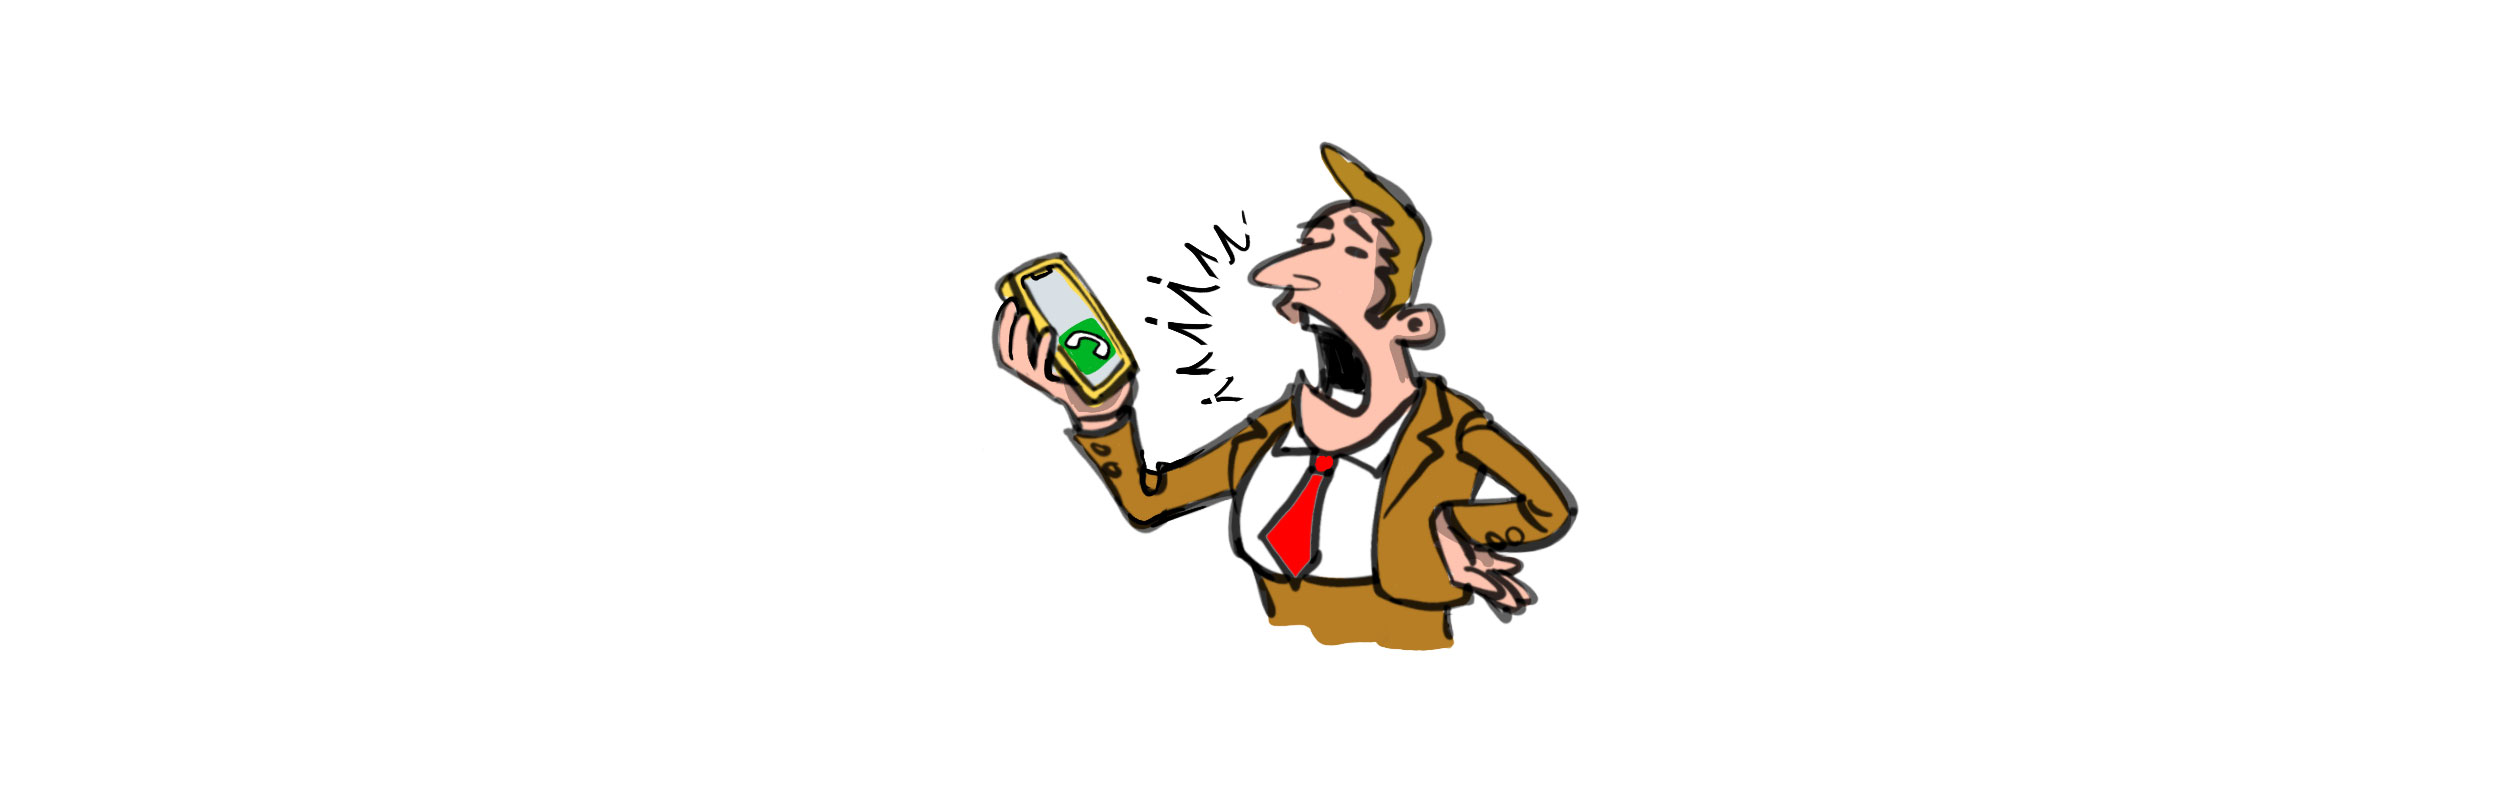 Person on mobile phone